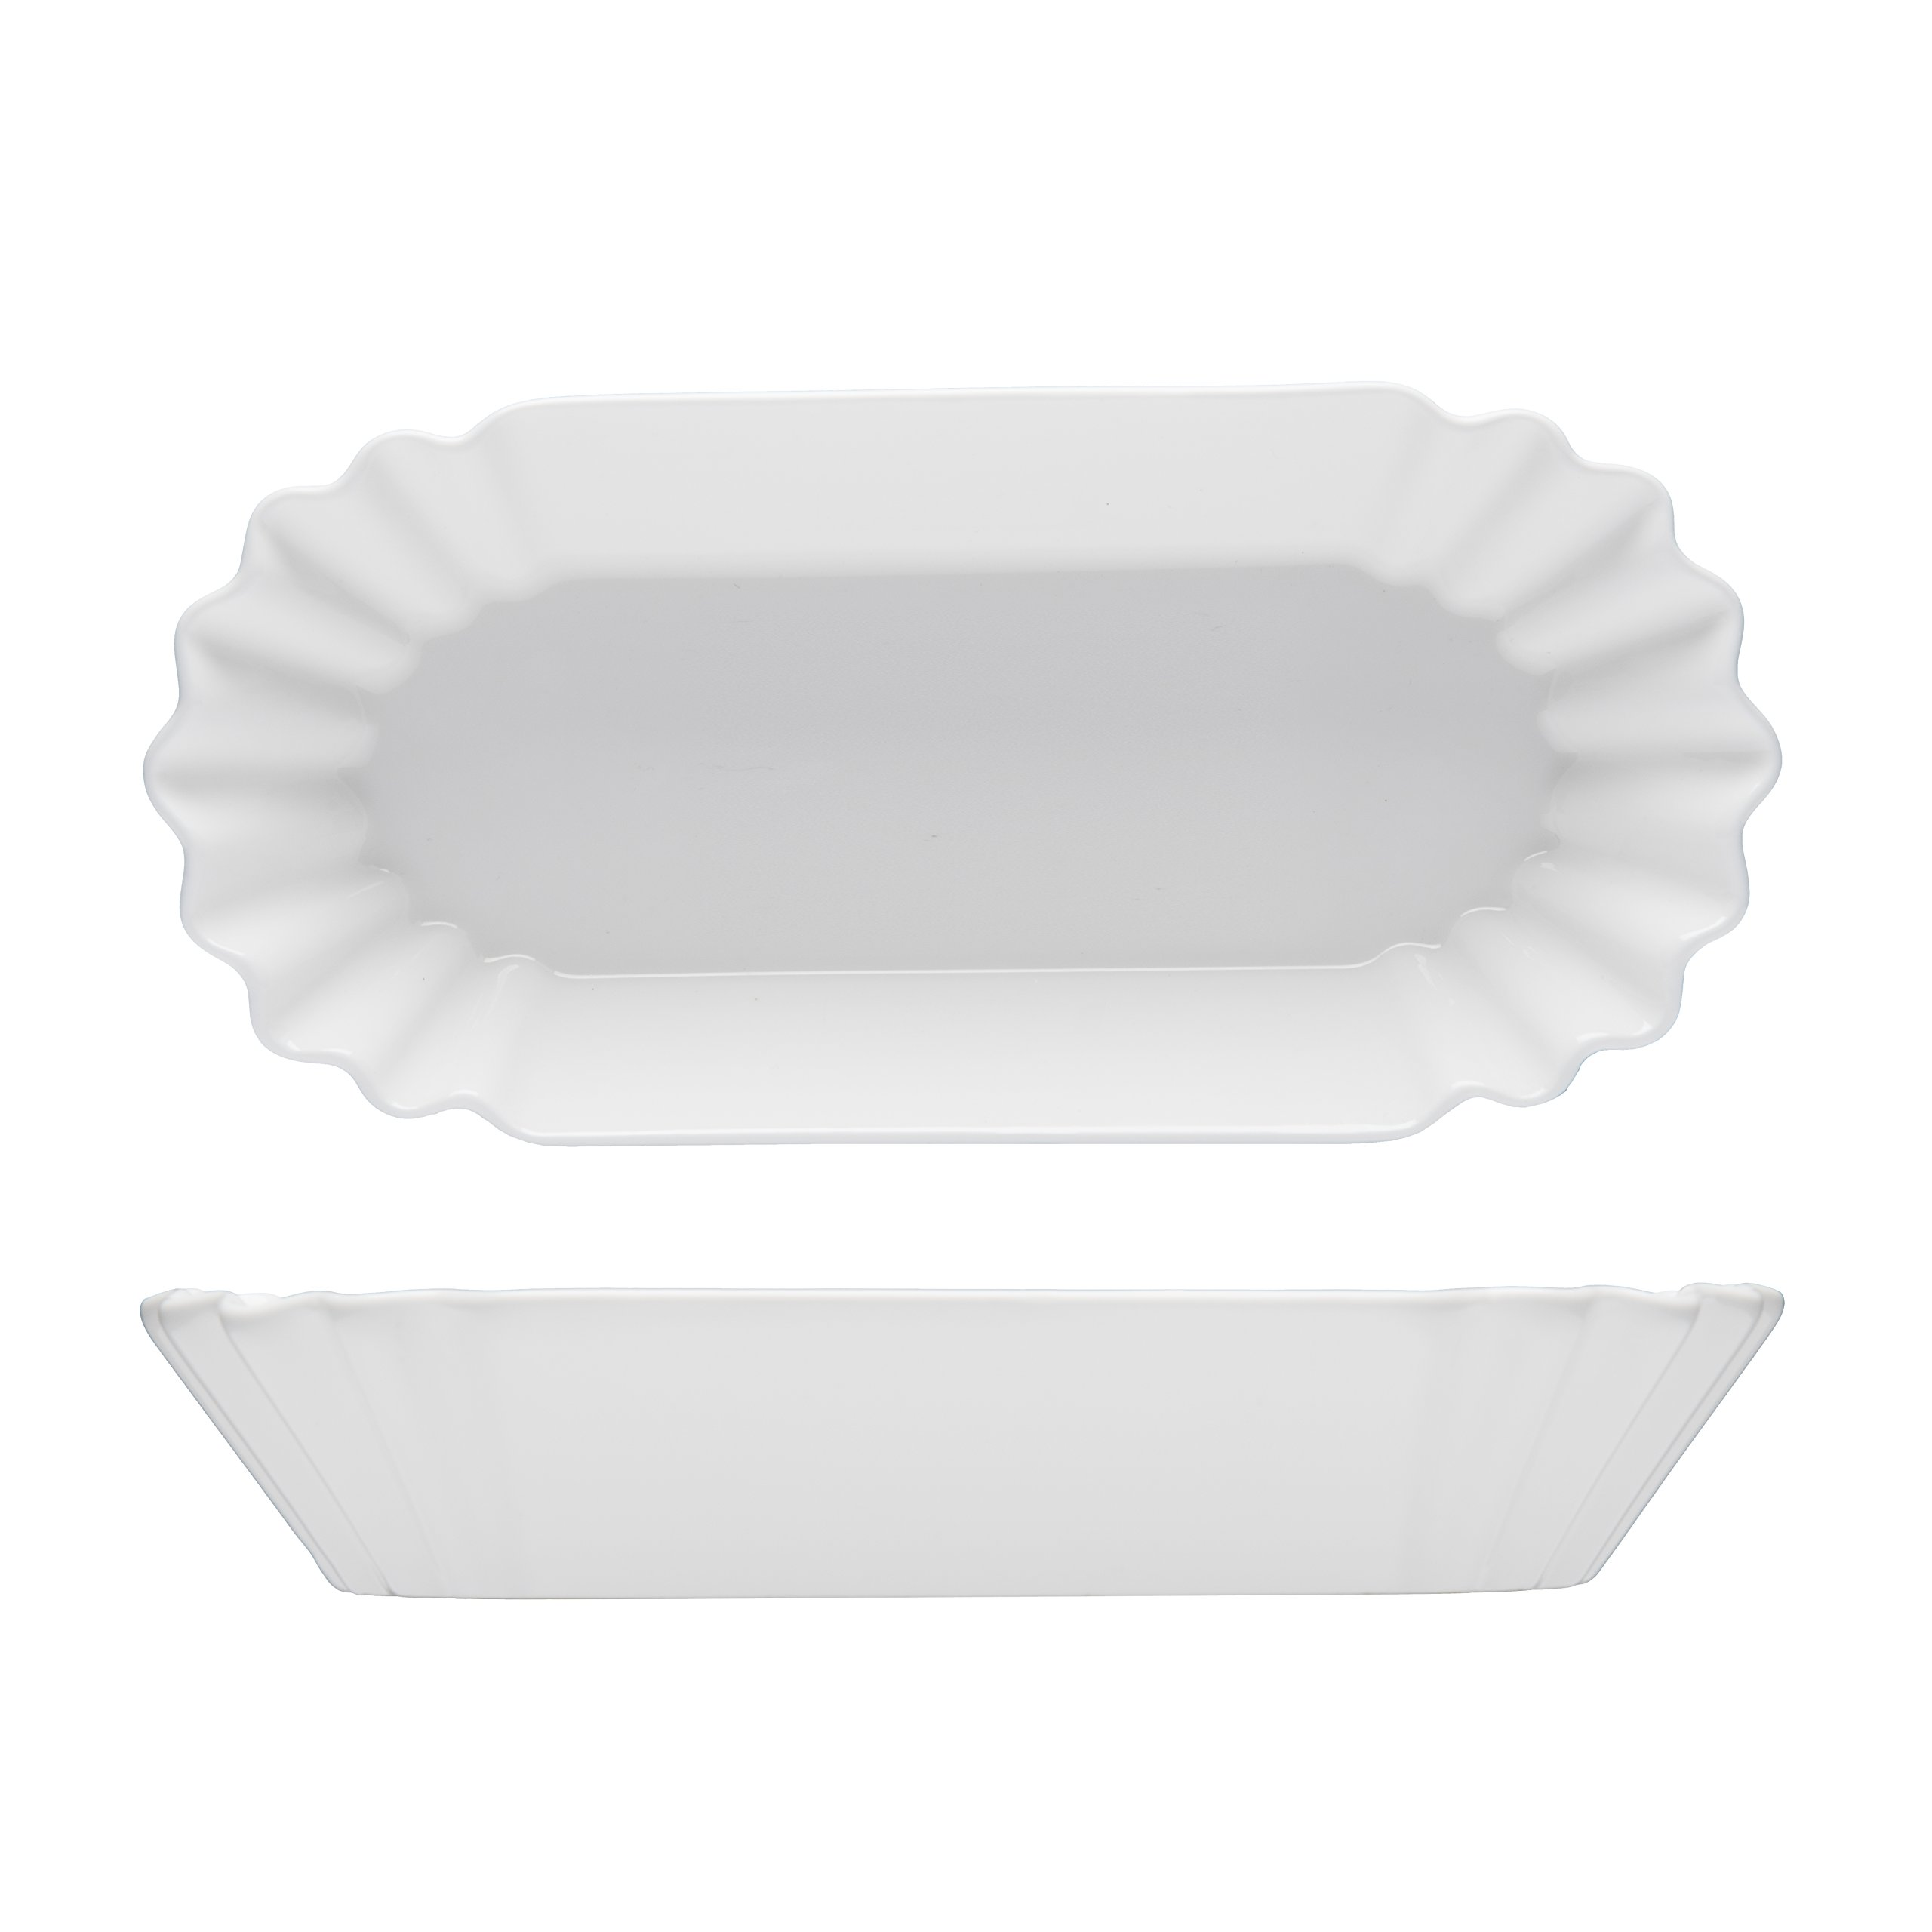 Fortessa Fortaluxe Food Truck Chic Hot Dog Plate, 8.25 x 4-Inch, Set of 4